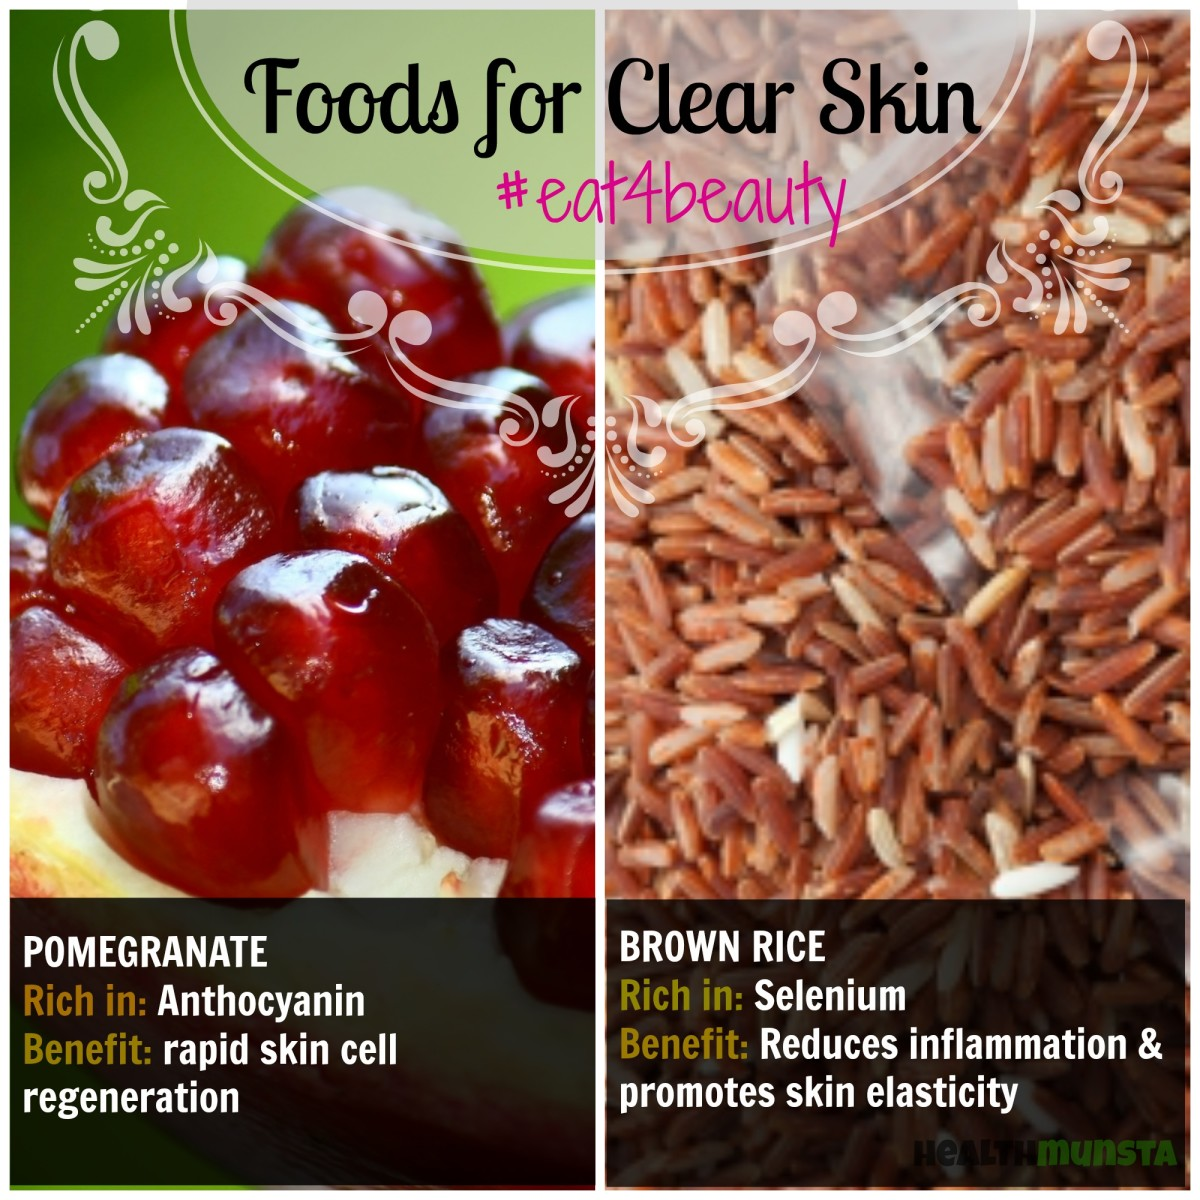 What foods to eat for clear and beautiful skin? Pomegranate and brown rice are on the list!